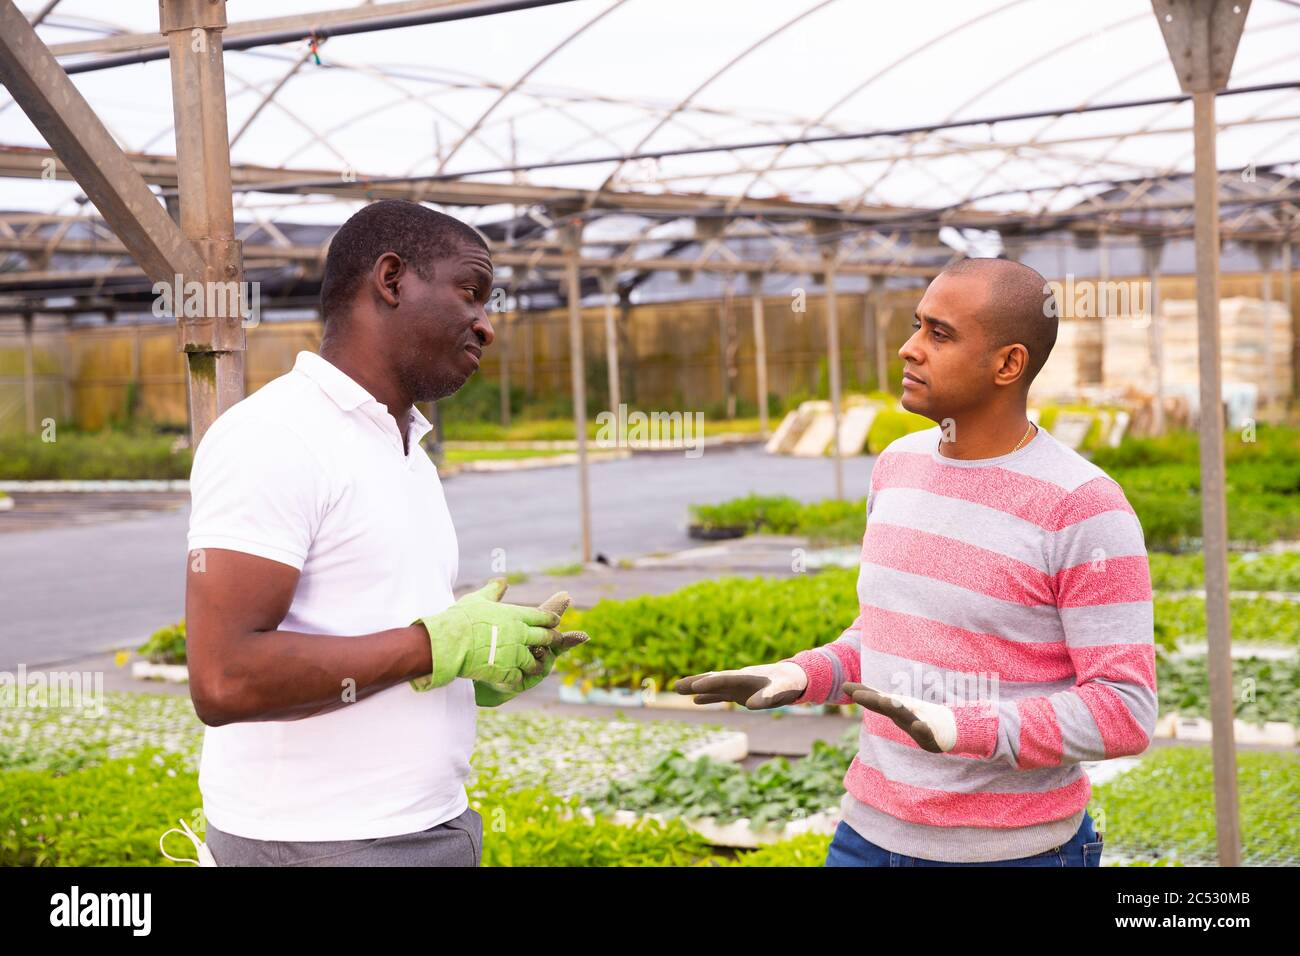 Dissatisfied greenhouse owner scolds an offending employee man Stock Photo